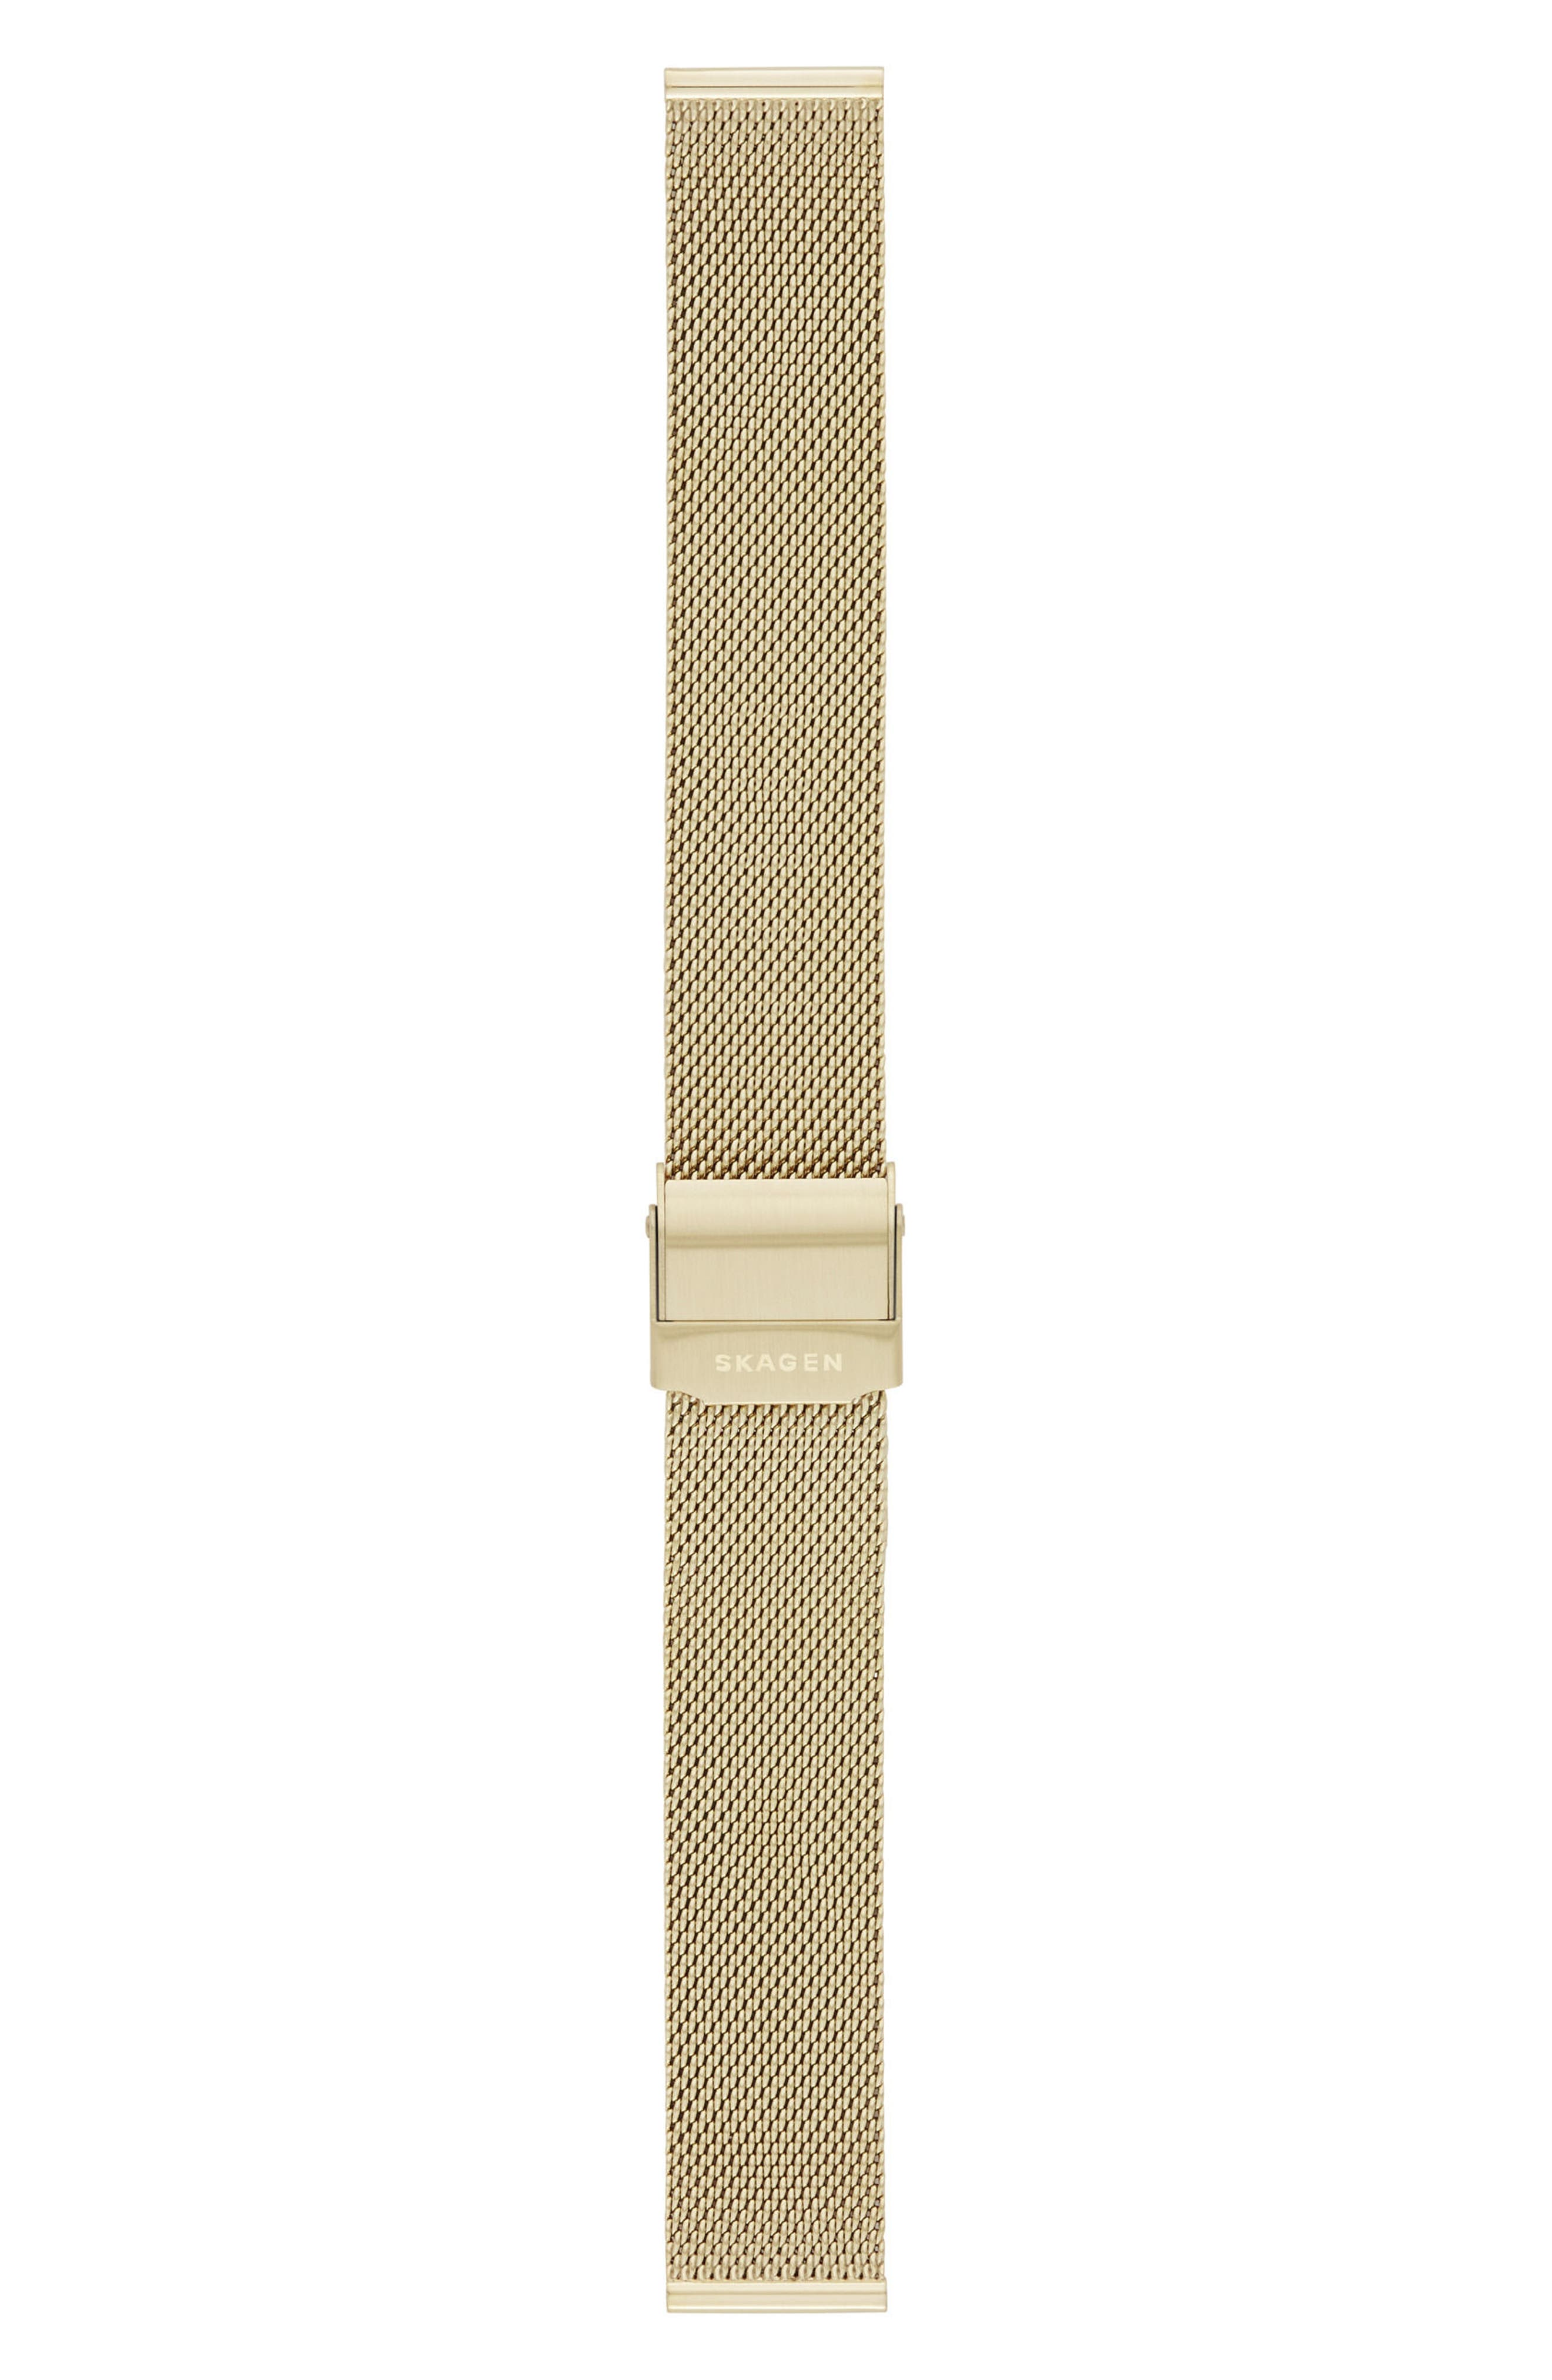 Mesh Watch Strap, 16mm,                             Alternate thumbnail 2, color,                             710